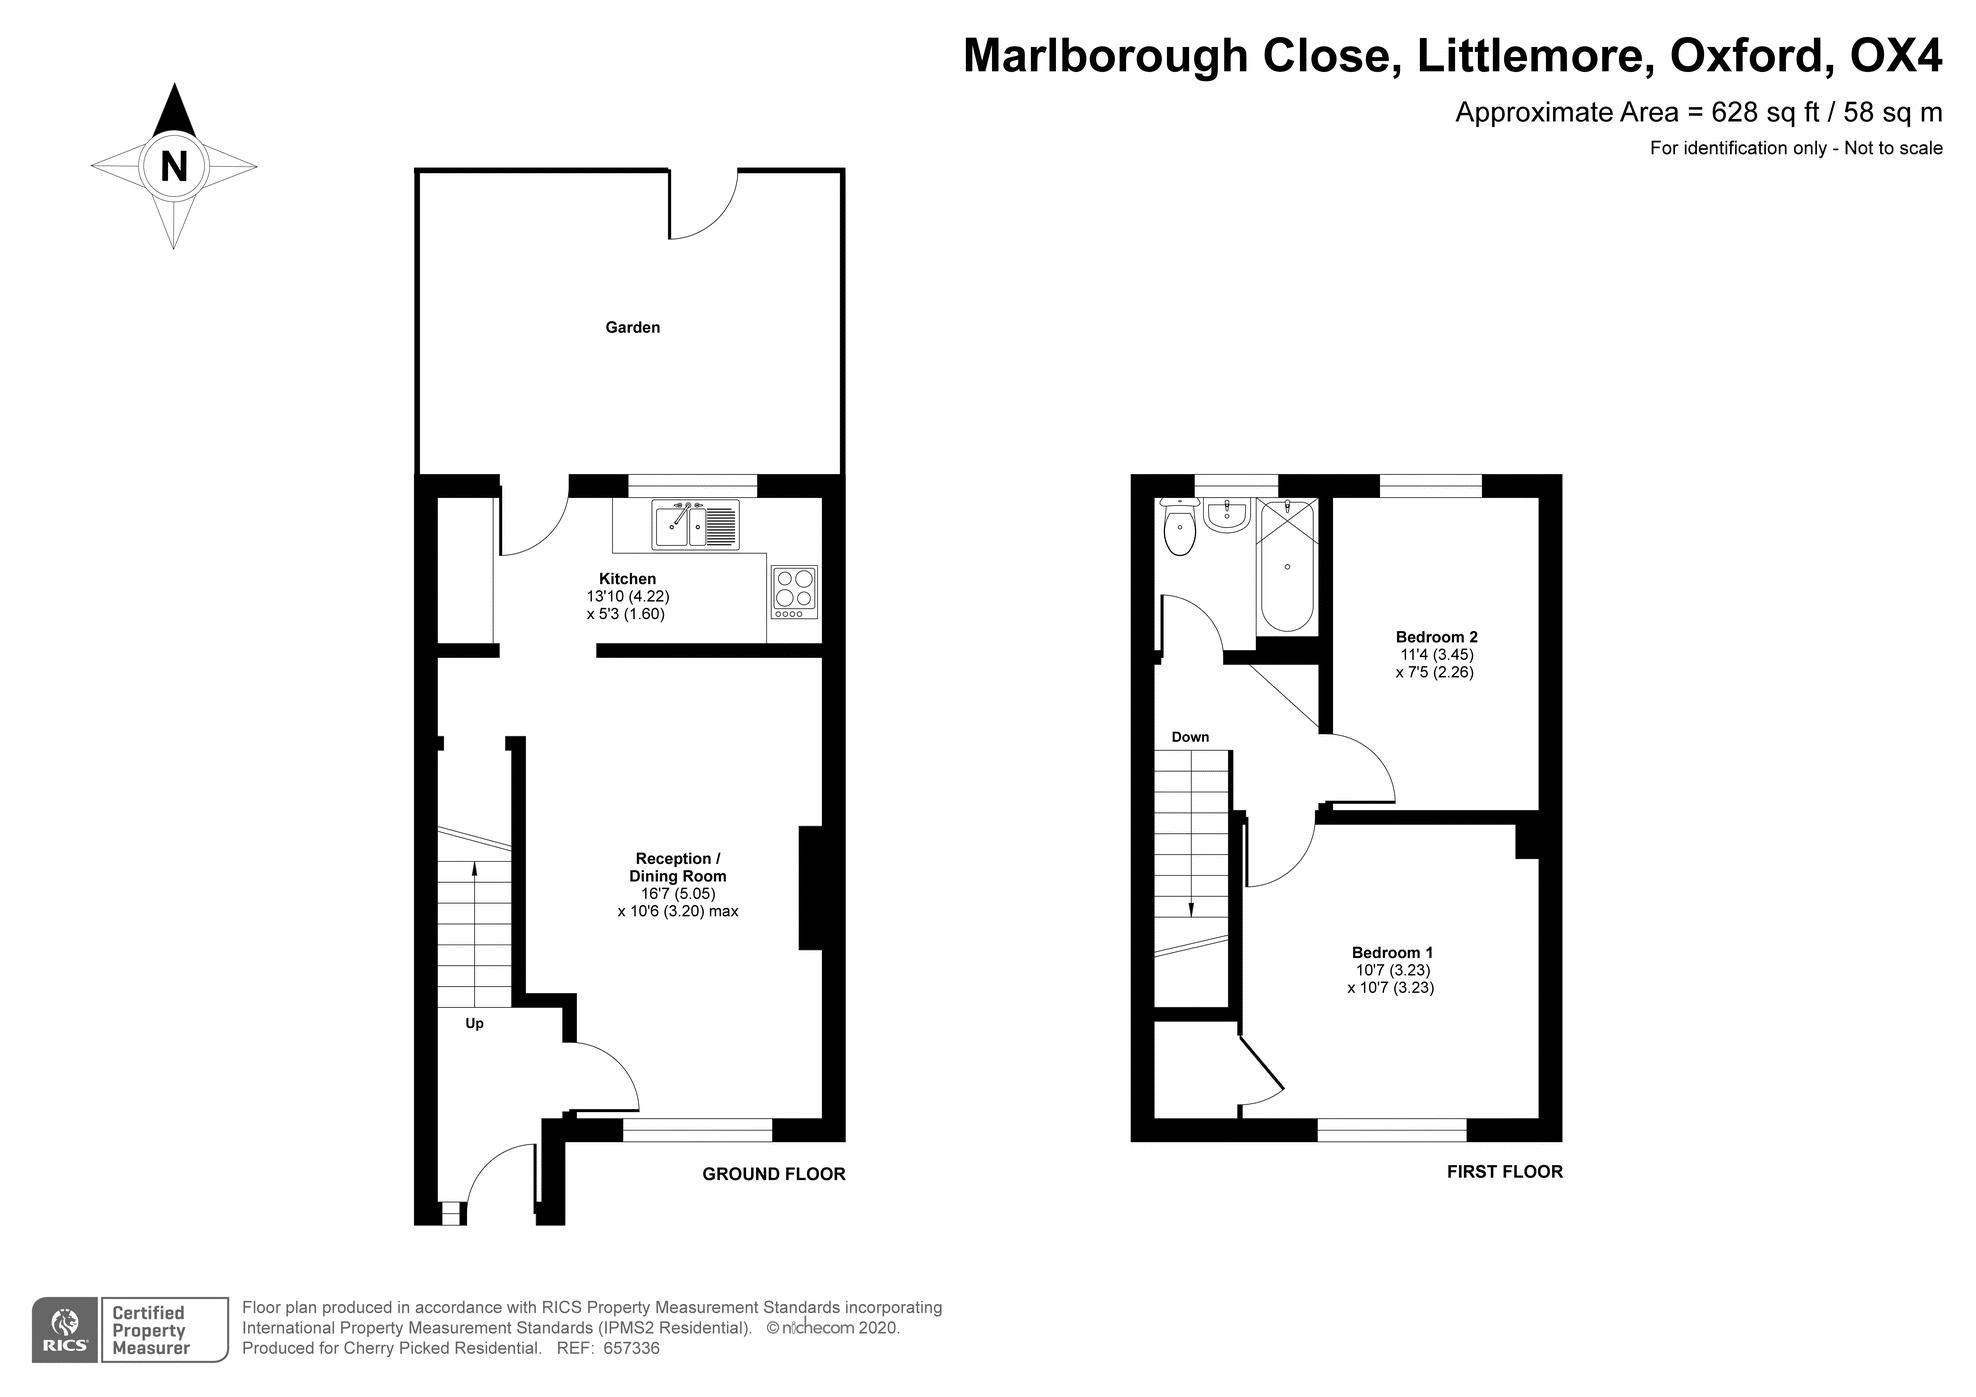 Marlborough Close Littlemore